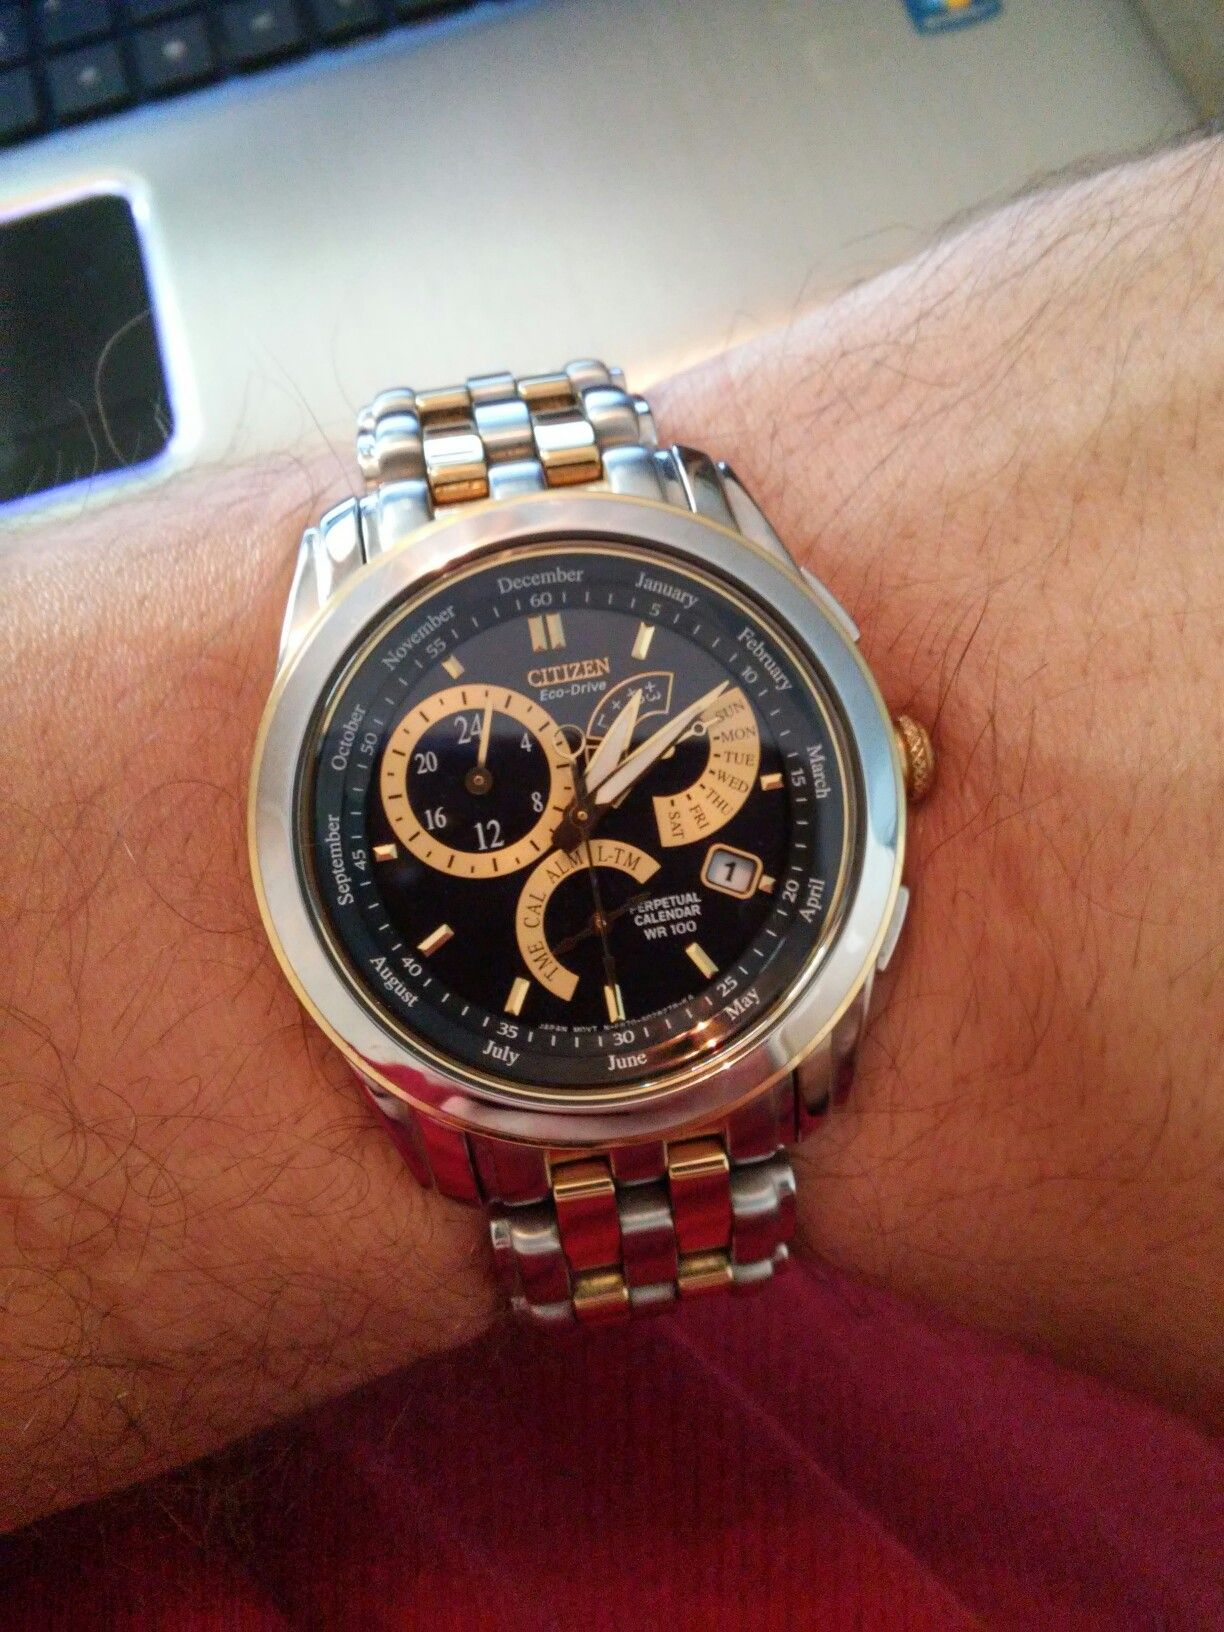 Big Thanks To My Brother For Giving Me An Early Birthday Gift His Citizen Watch With Perpetual Calendar Citizen Watch Perpetual Calendar Birthday Gifts